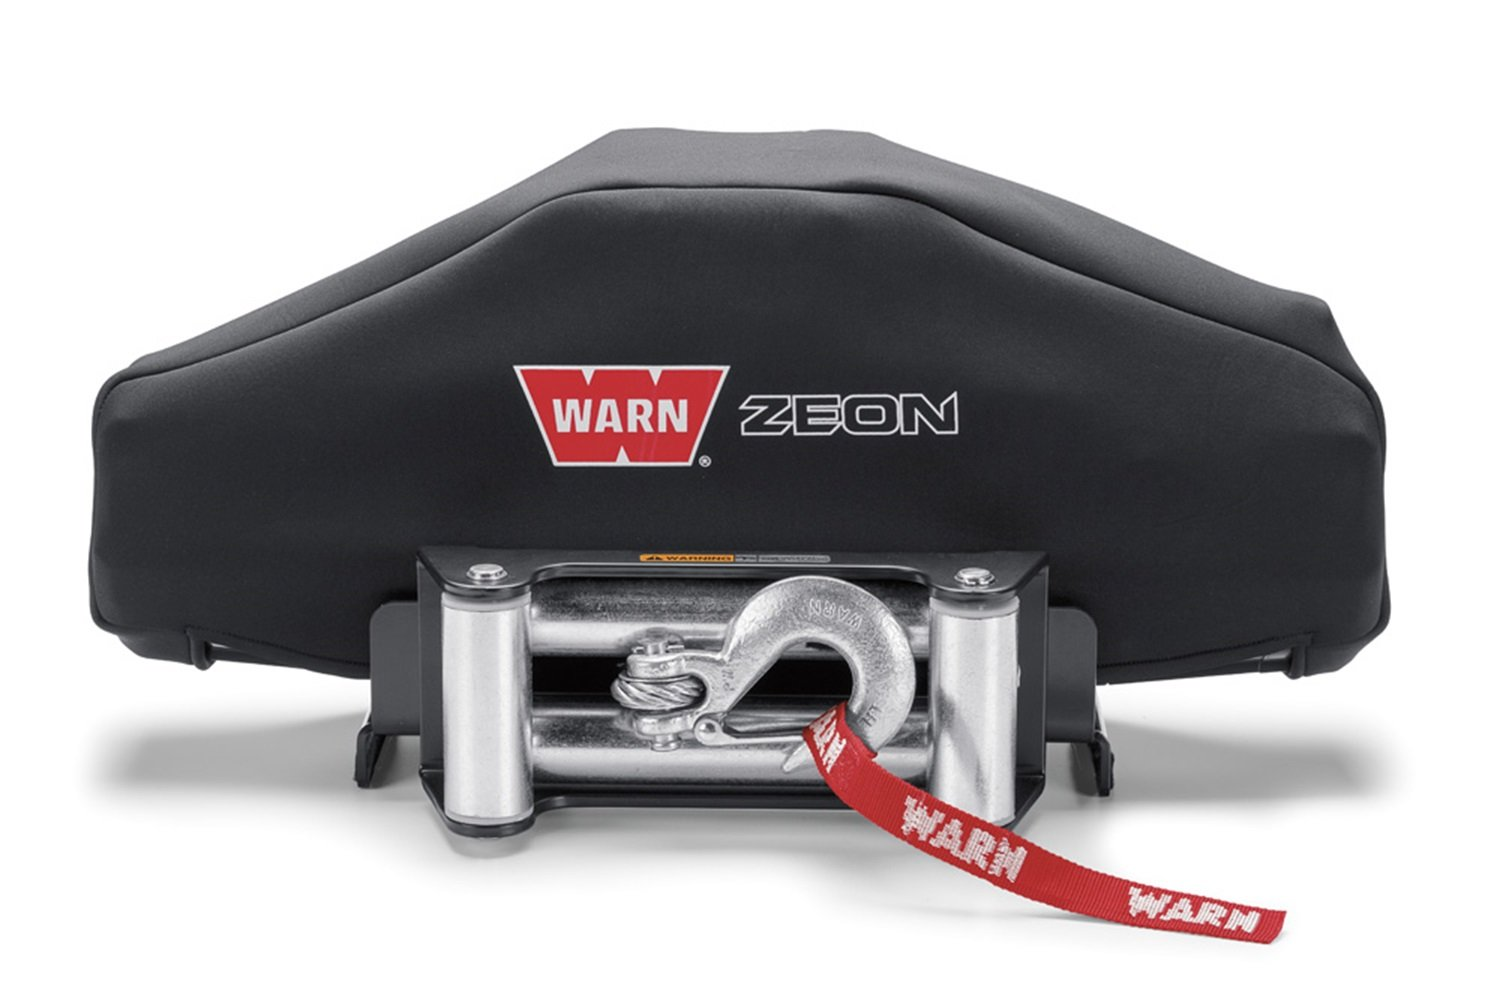 Warn 91415 Zeon Neoprene Cover, Fits: 8, 8, 10-S, 12 Winches by WARN